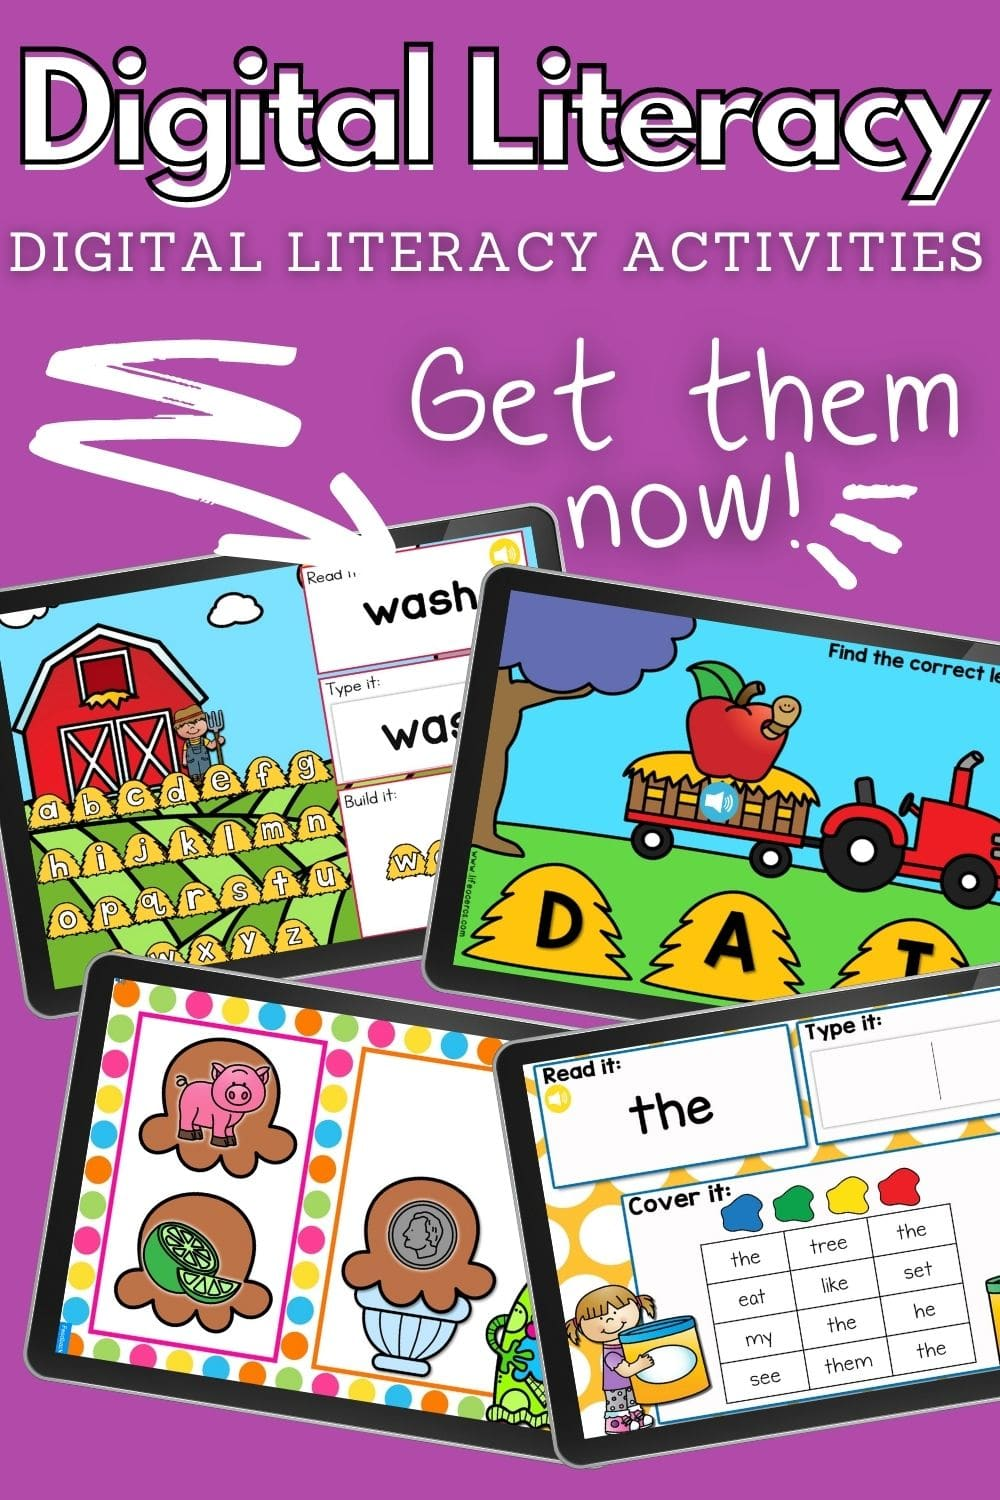 Click to go to the digital literacy activities for kids page